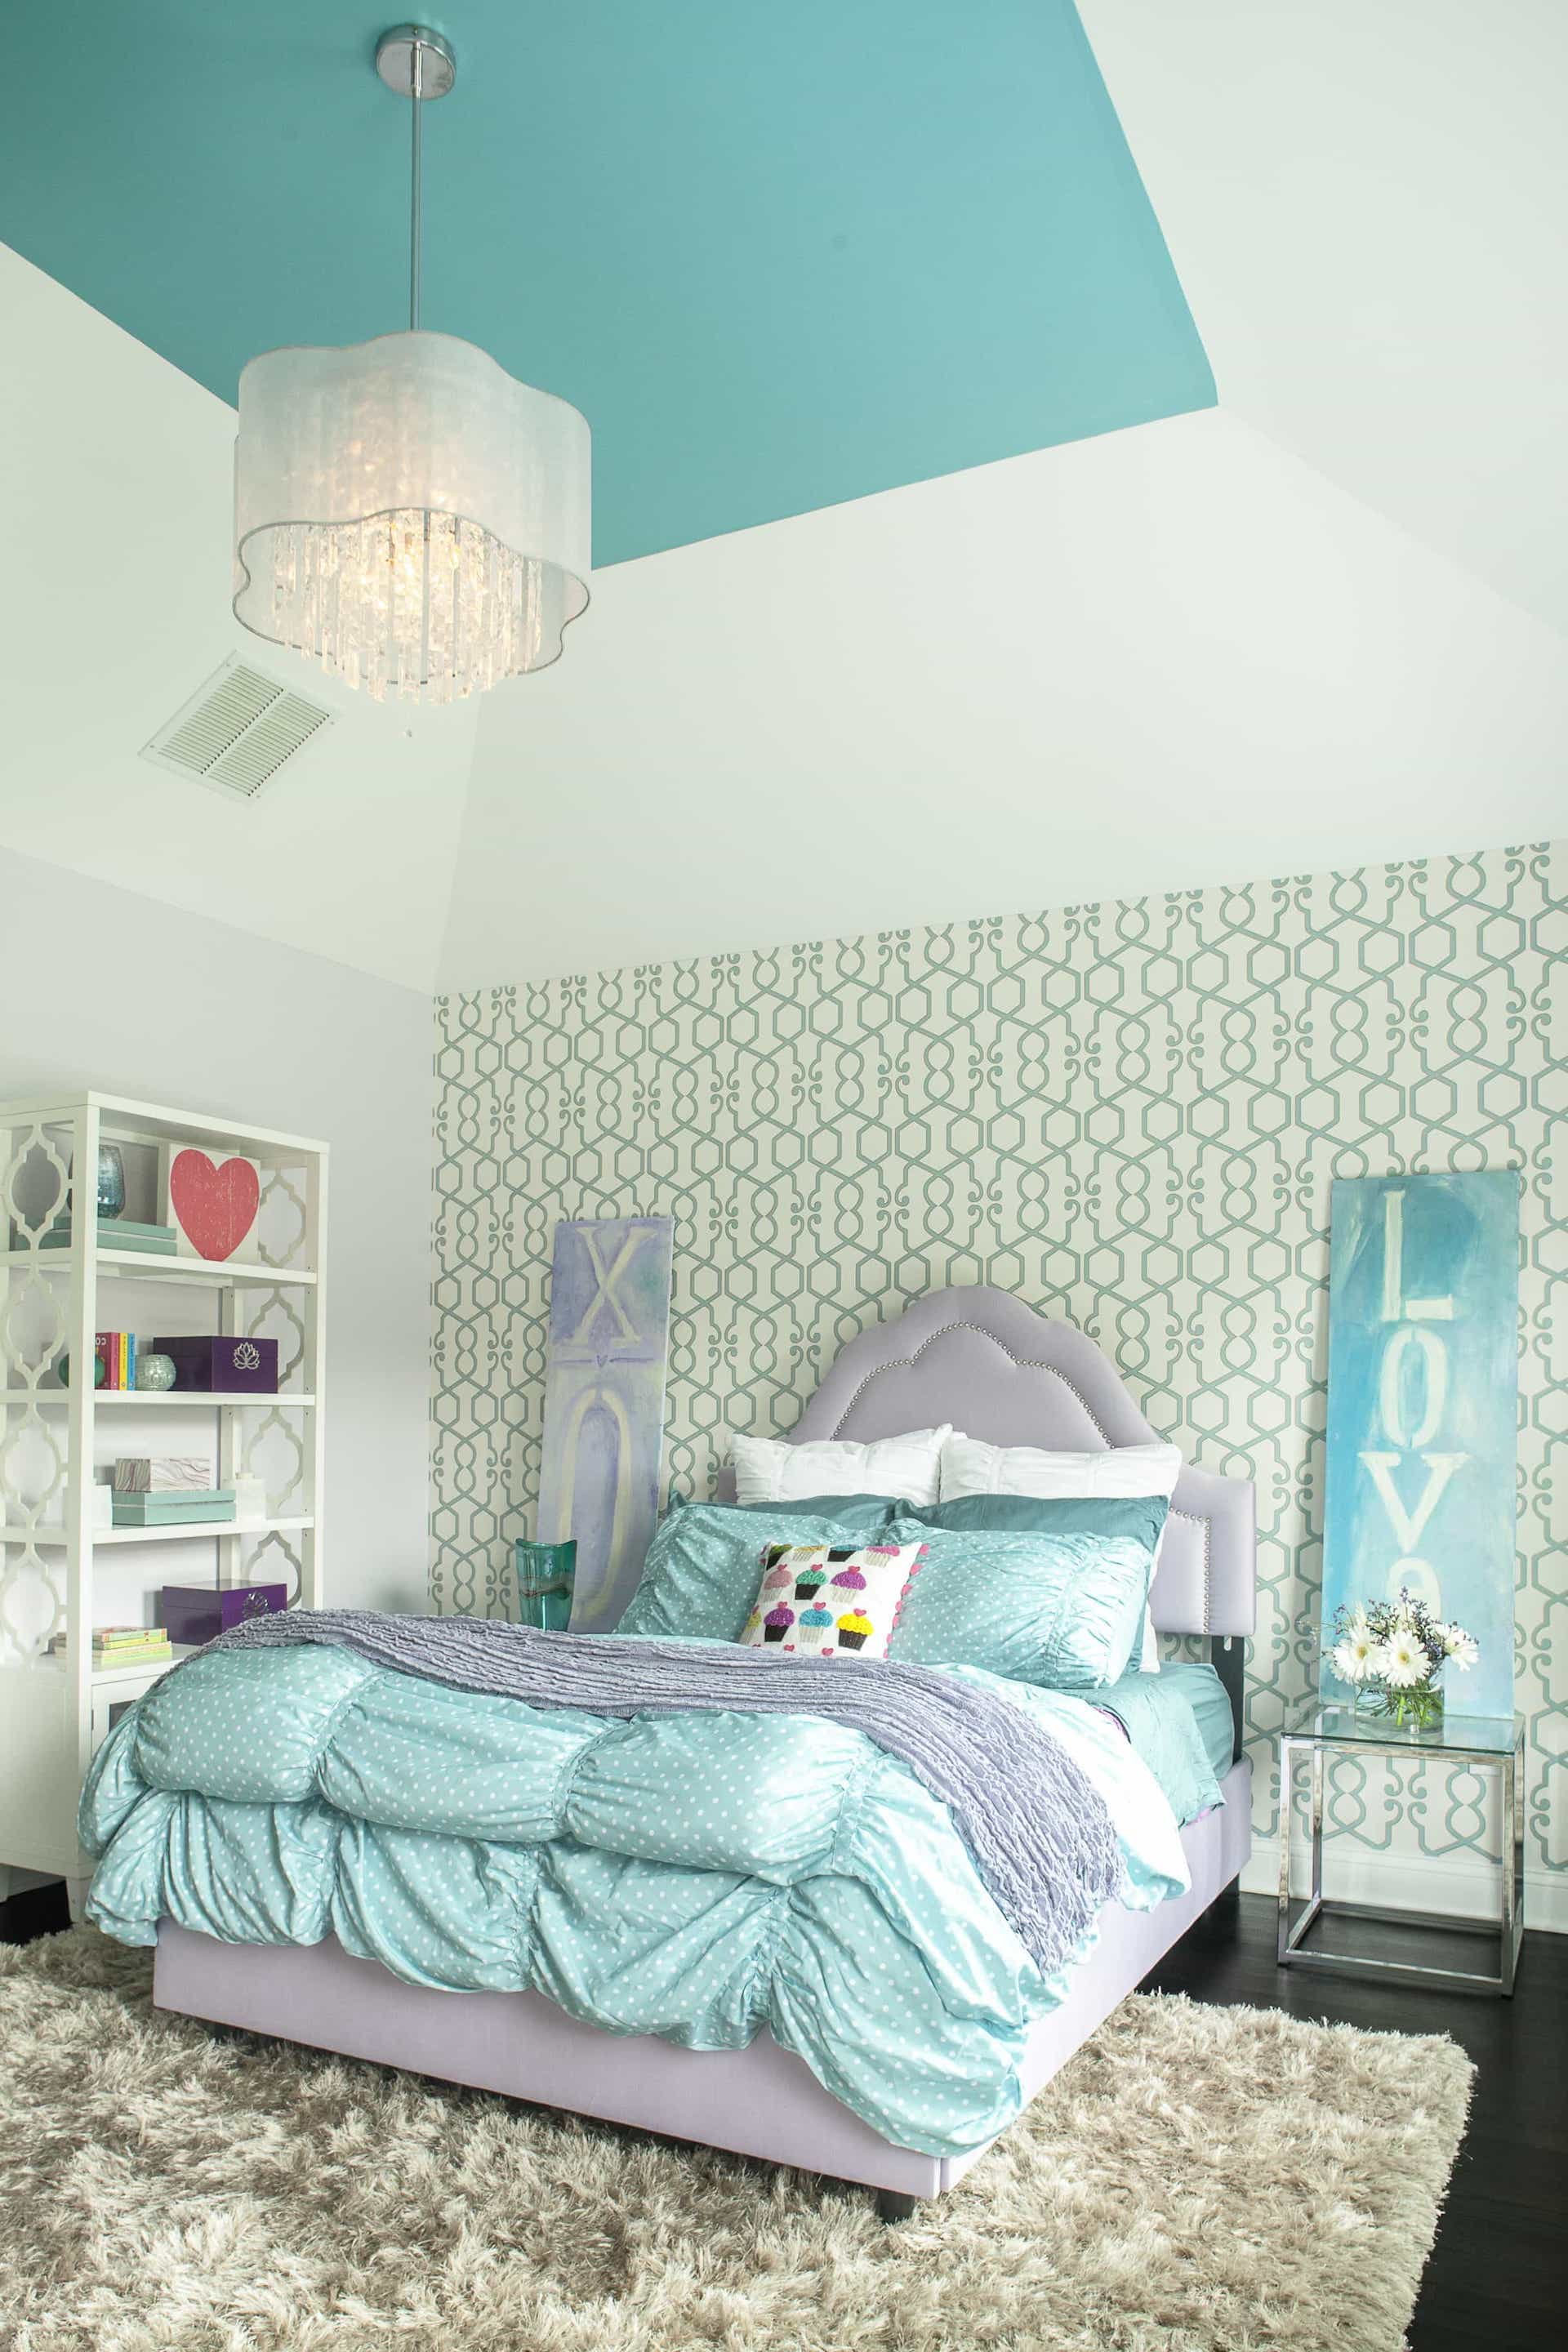 Glamorous Girls Bedroom With Flokati Rug And Patterned Accent Wall (View 3 of 10)